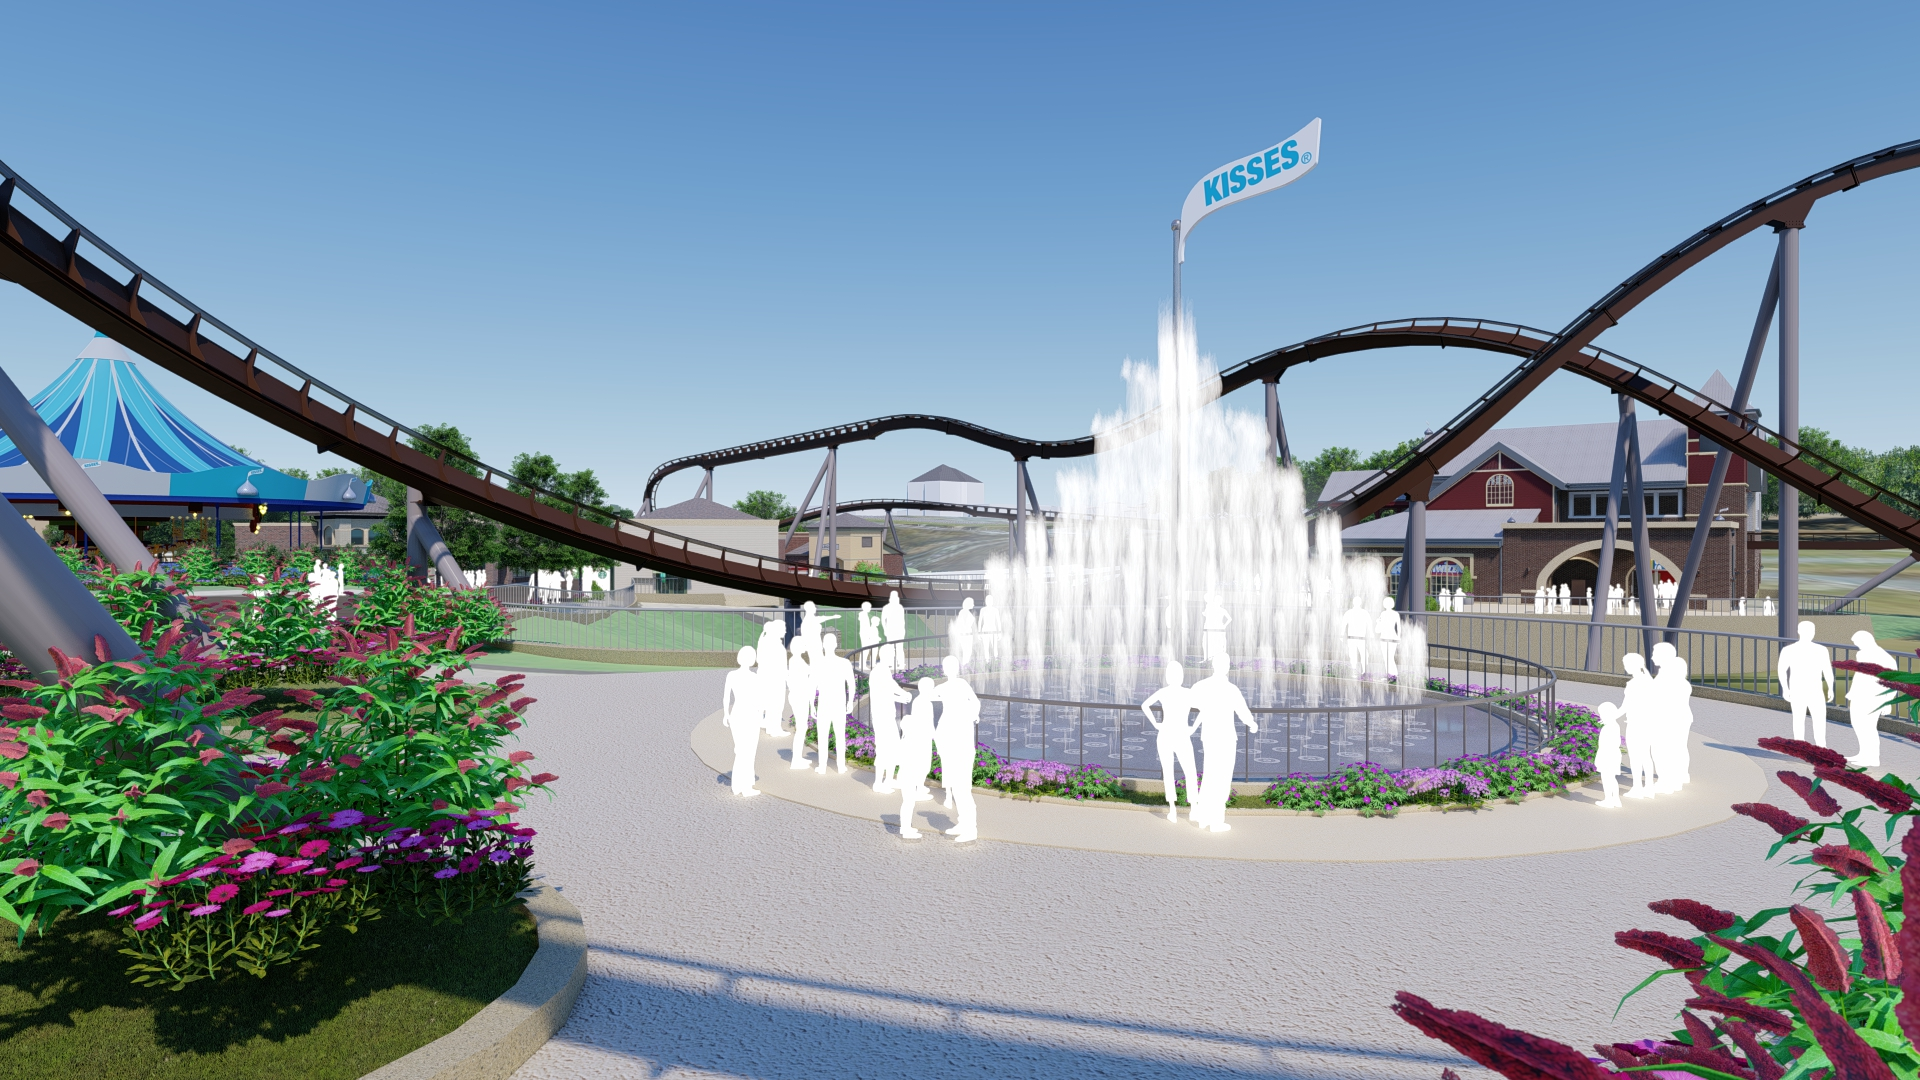 Hershey's Chocolatetown Coming Summer 2020